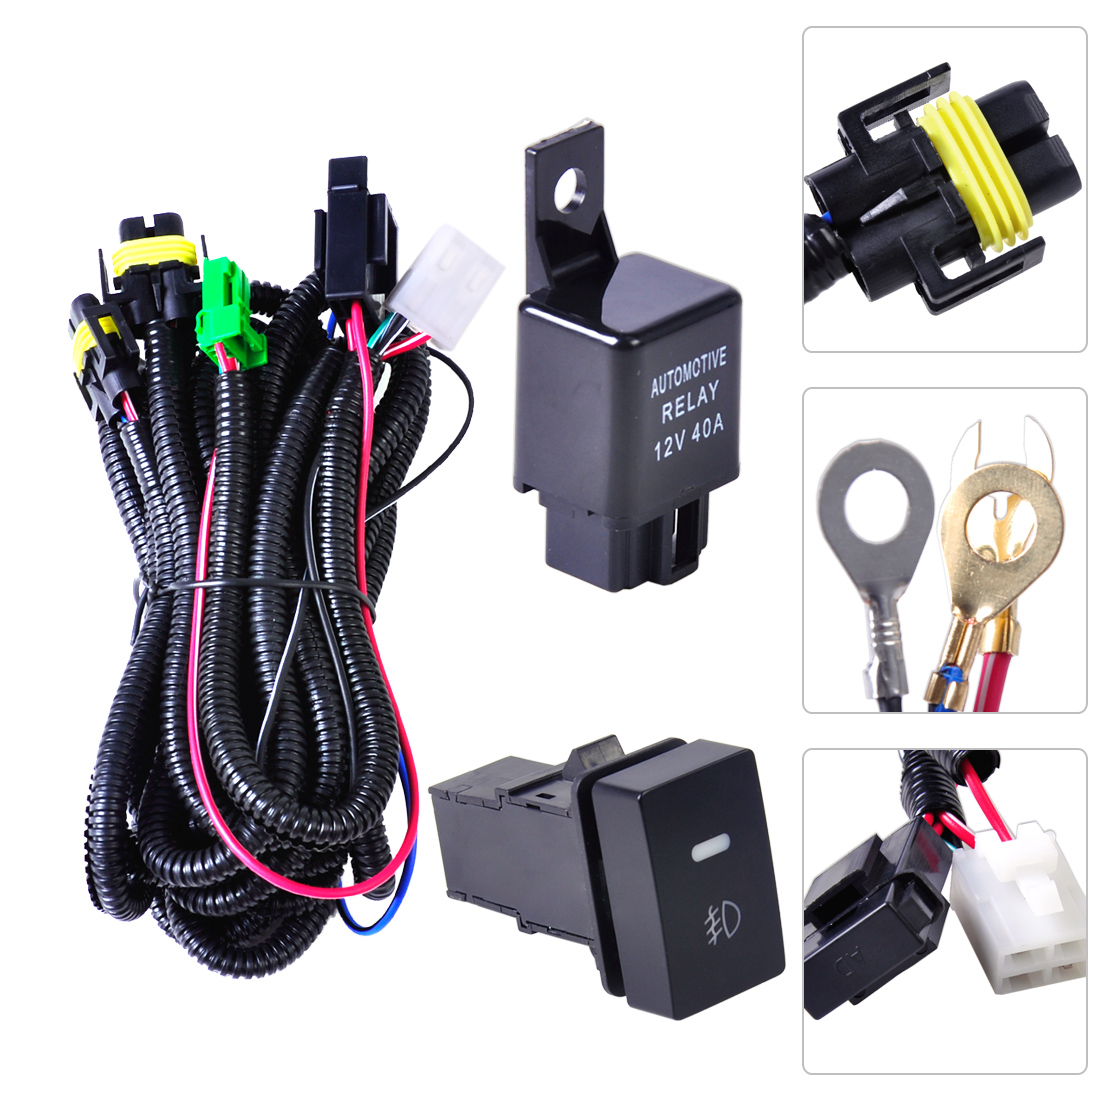 suzuki fog light wiring harness electrical wiring diagram house \u2022 piaa fog lights clear beler wiring harness sockets wire switch for h11 fog light lamp for rh aliexpress com fog light wiring without relay piaa fog light wiring harness